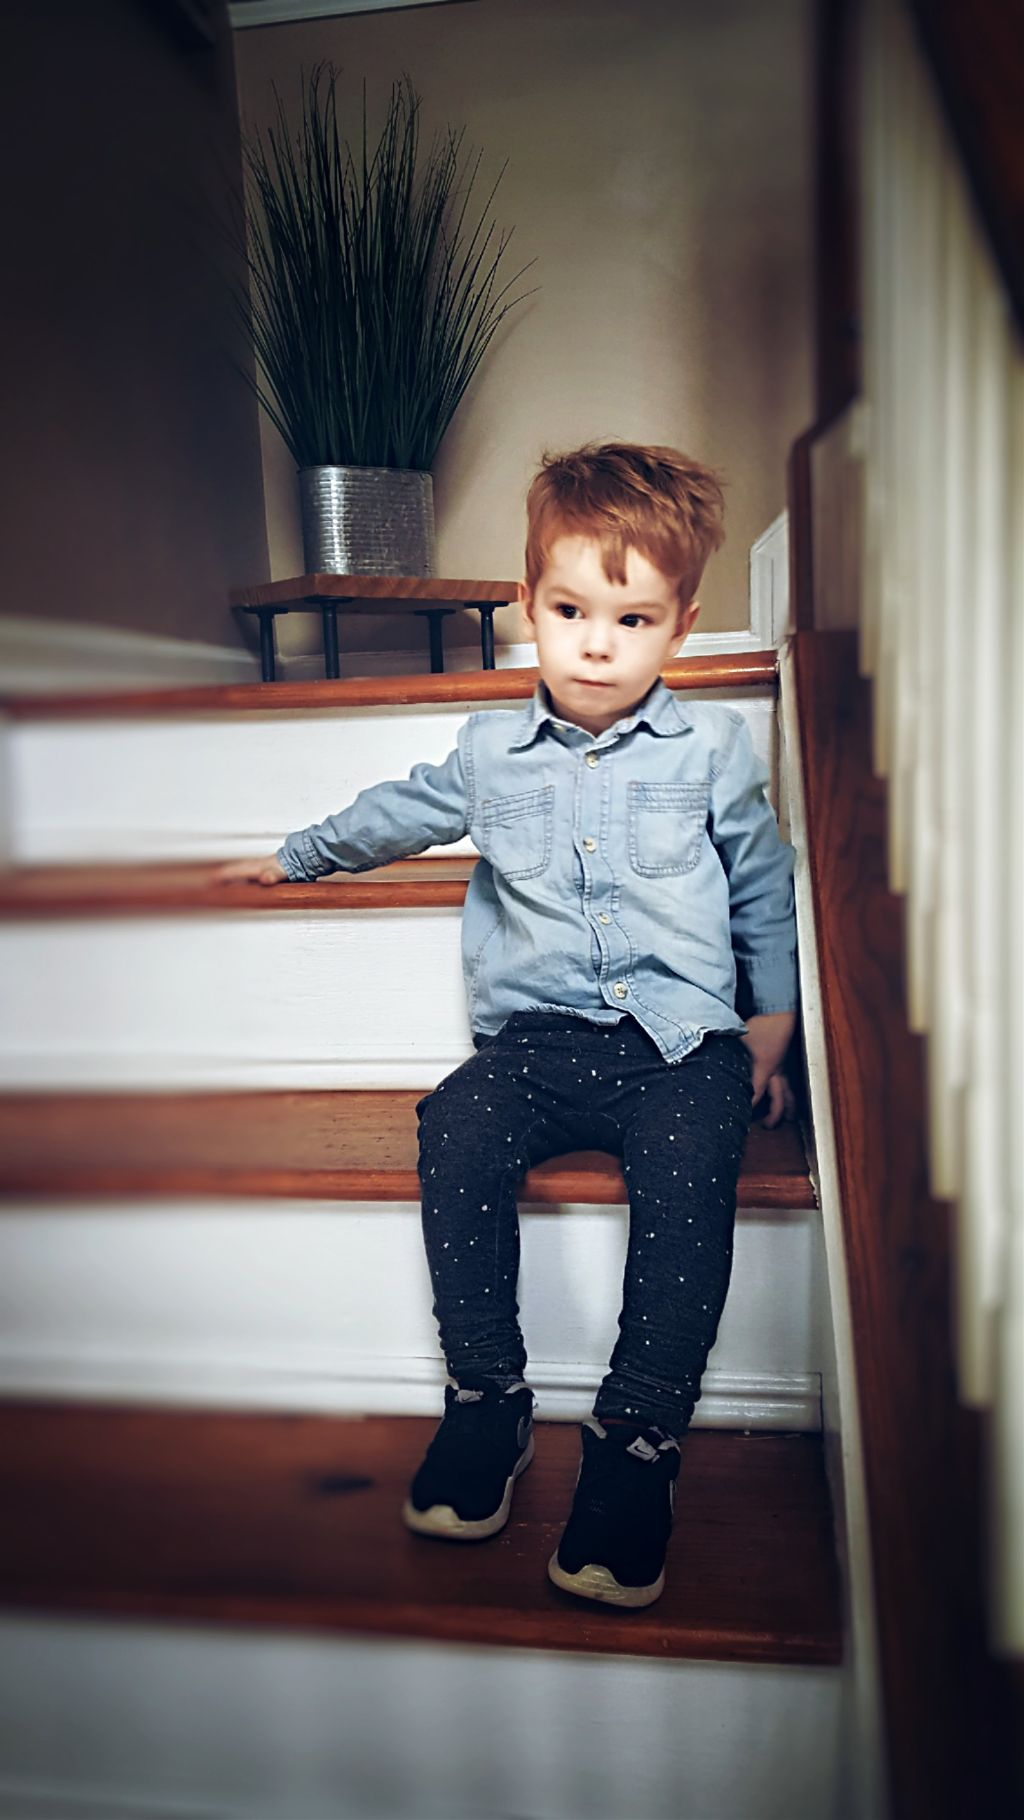 #throwback #2yrs #dresden #staircase #photoshoot #portraitphotography #son #style #2016